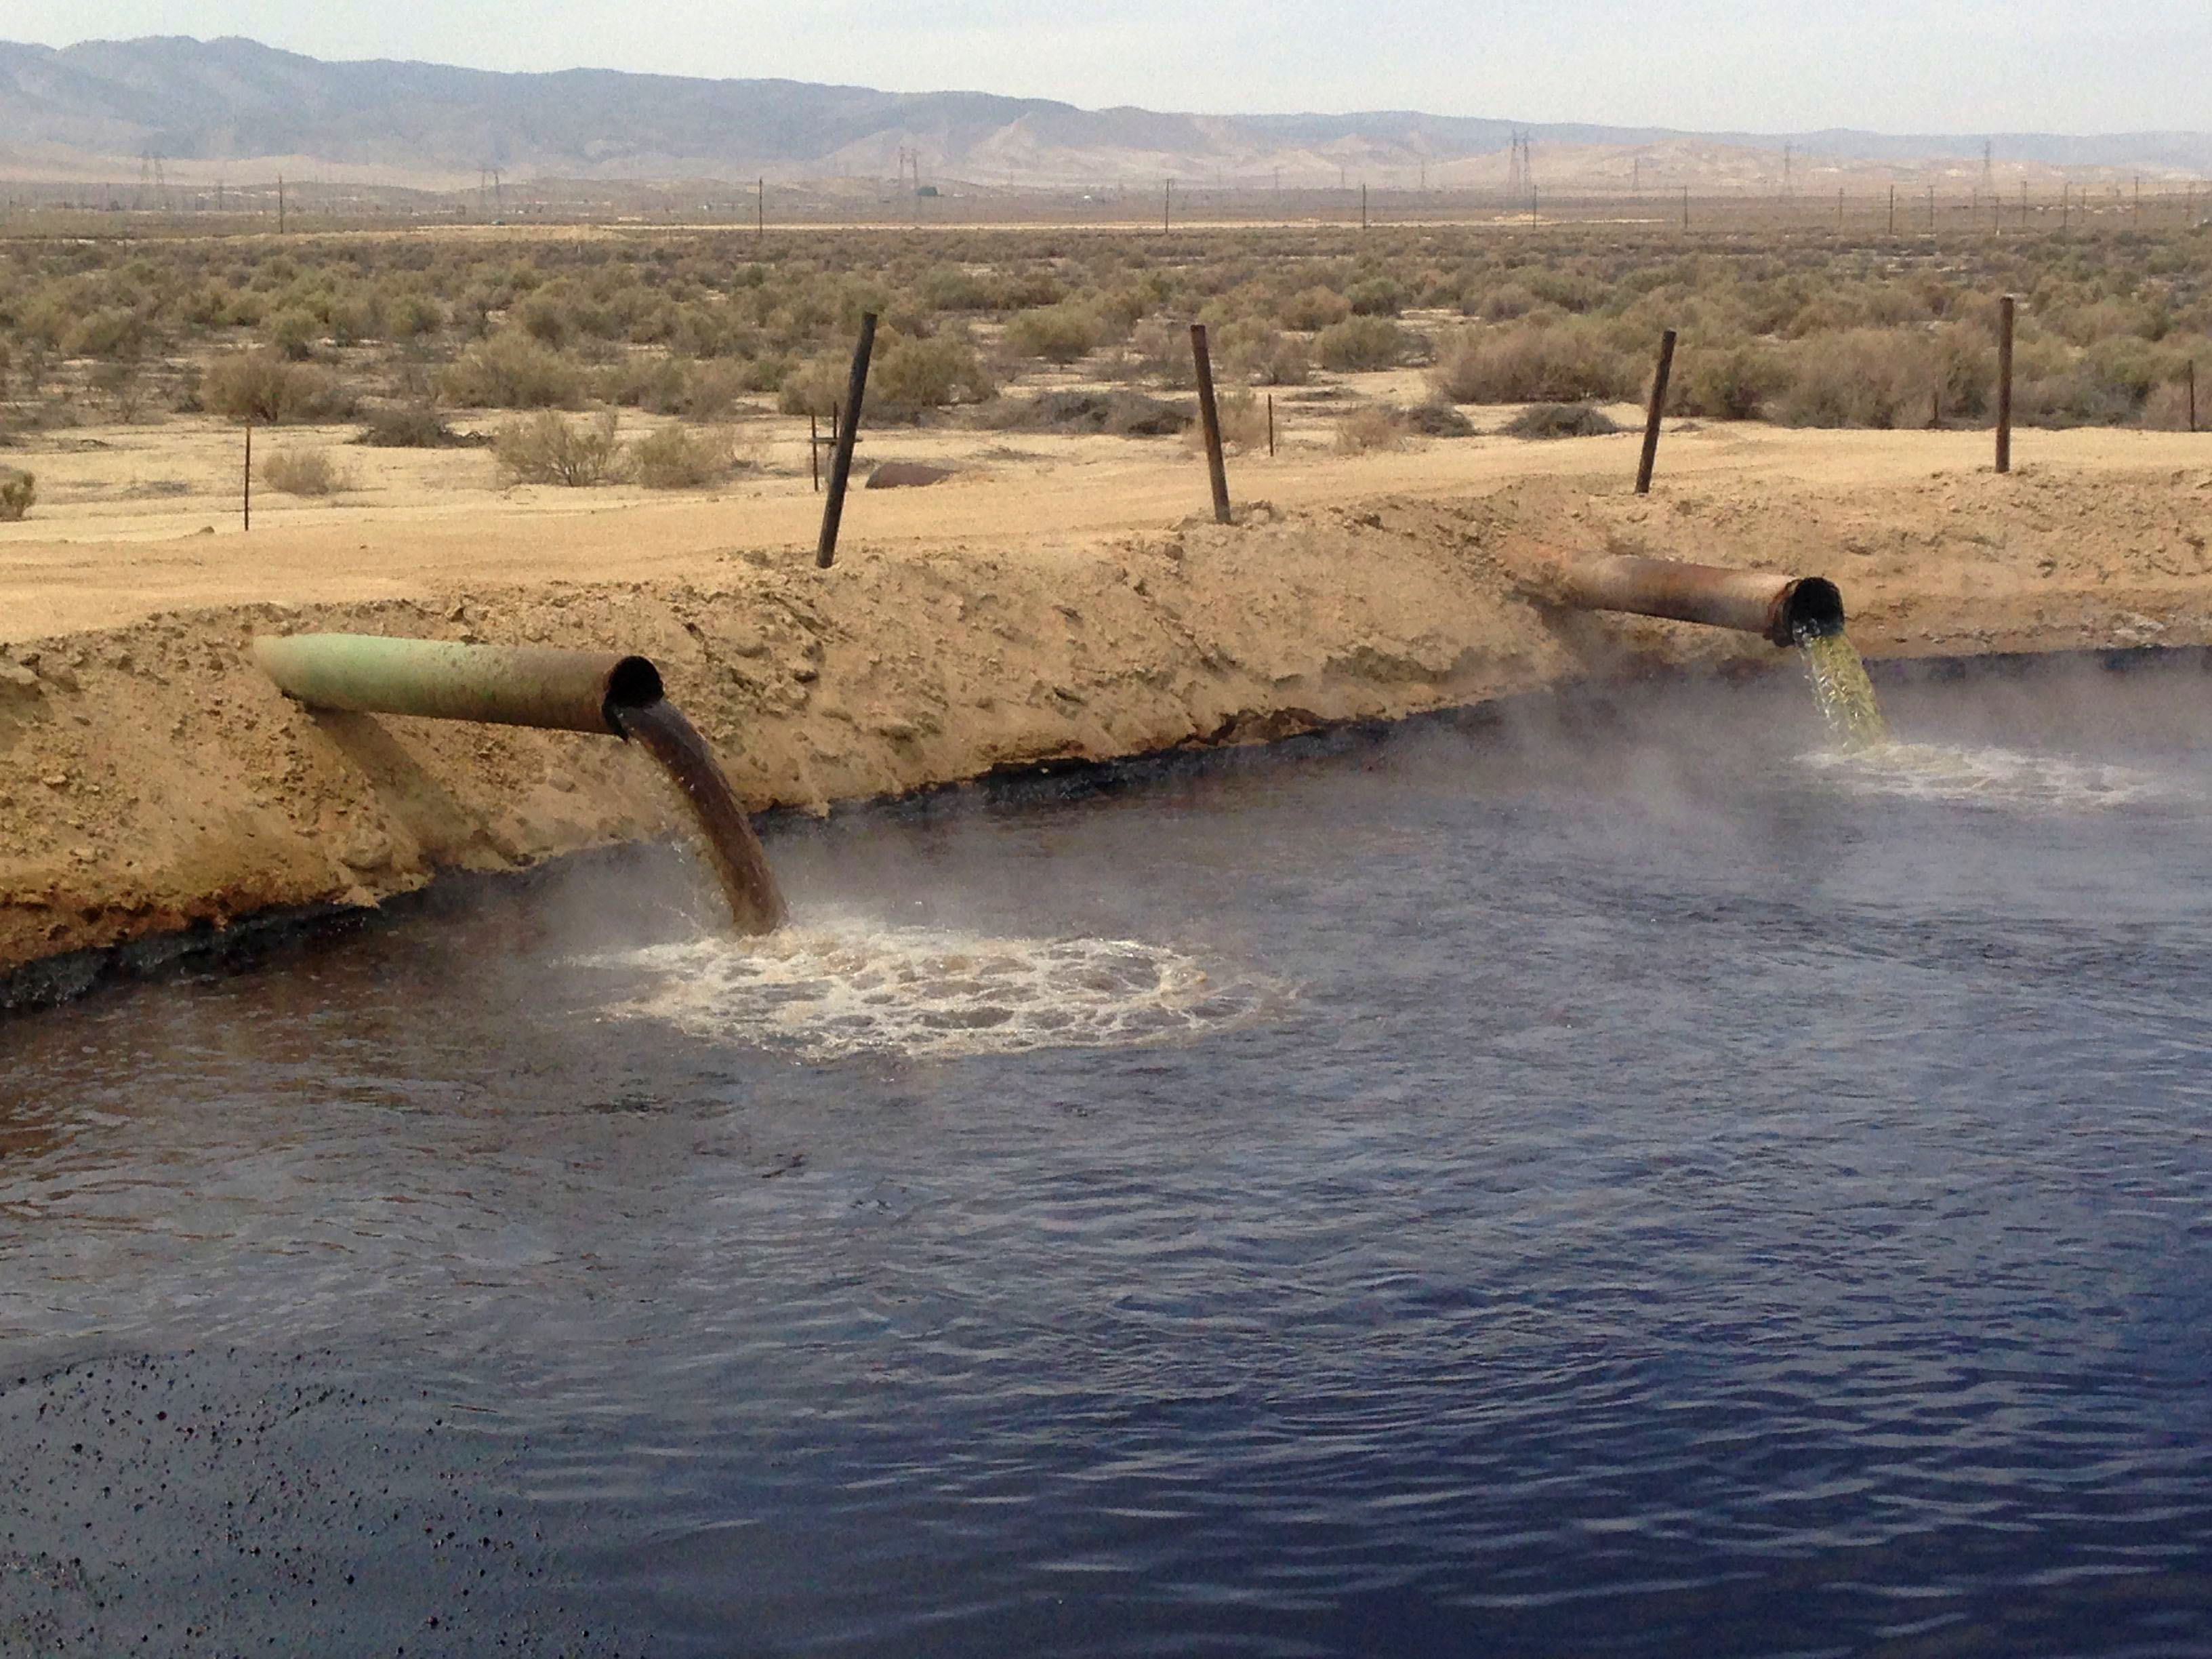 Oil and gas wastewater pit. Credit Andrew Grinberg